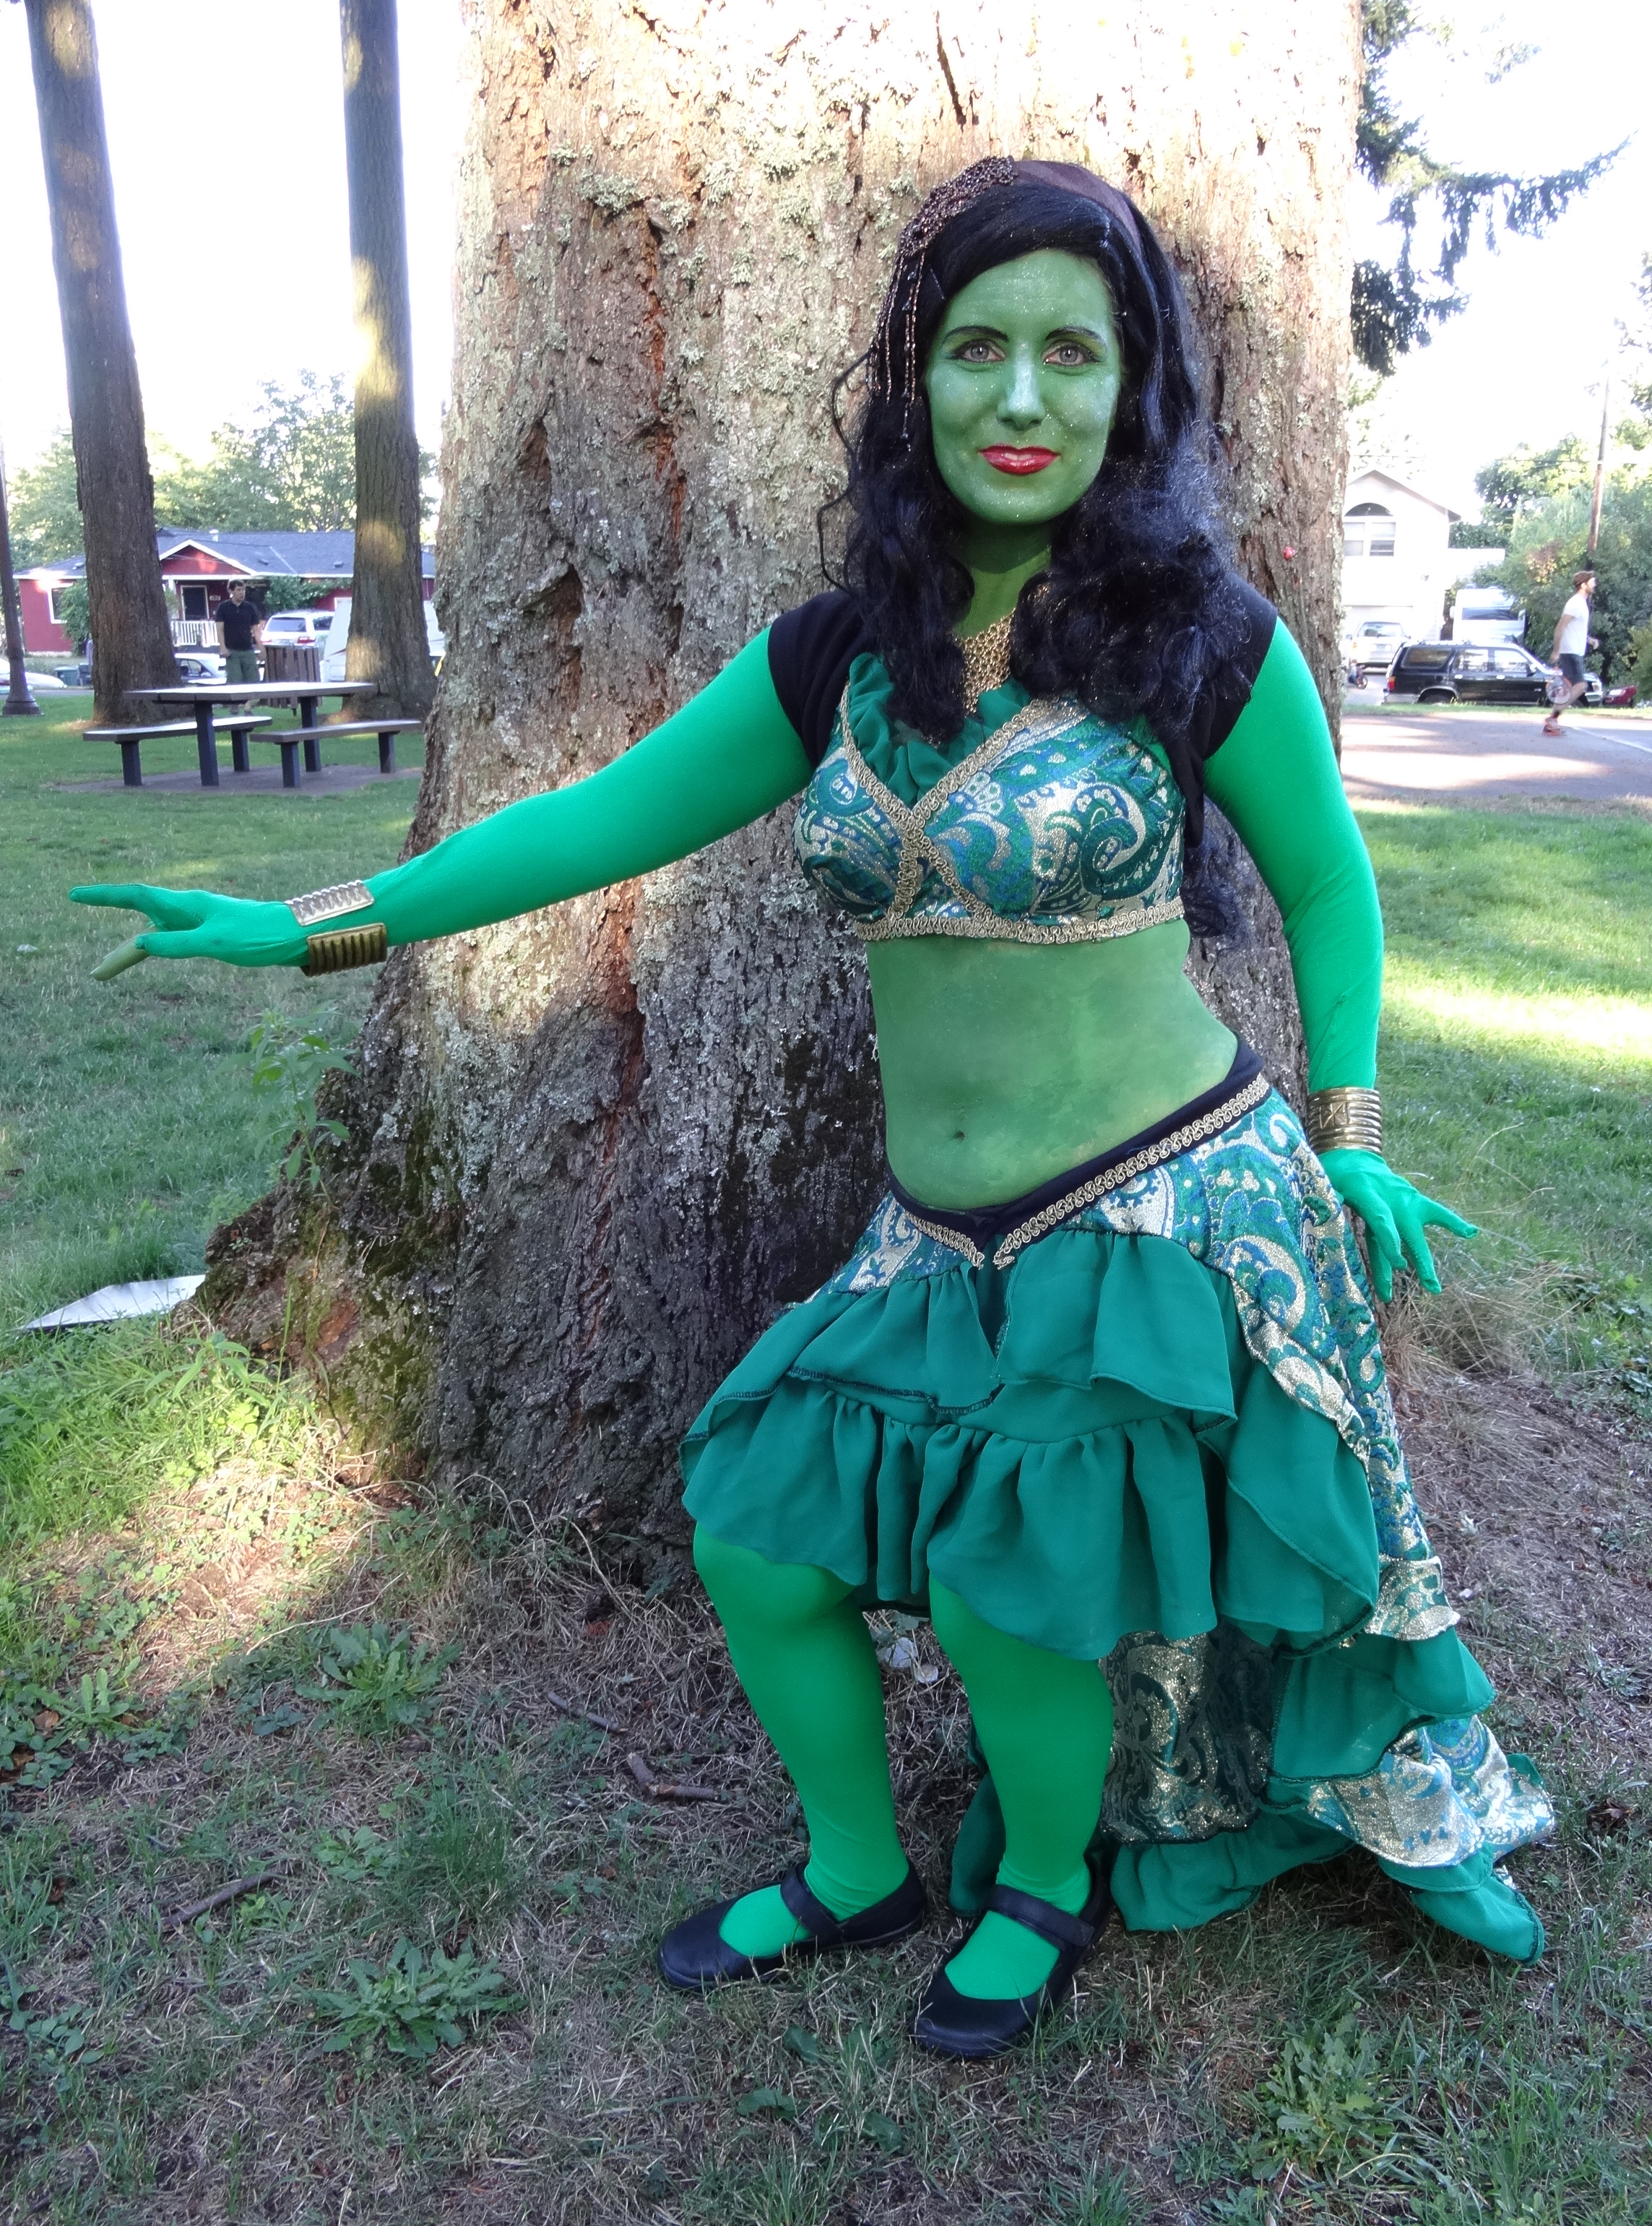 Orion Slave Dancer at Trek Theatre